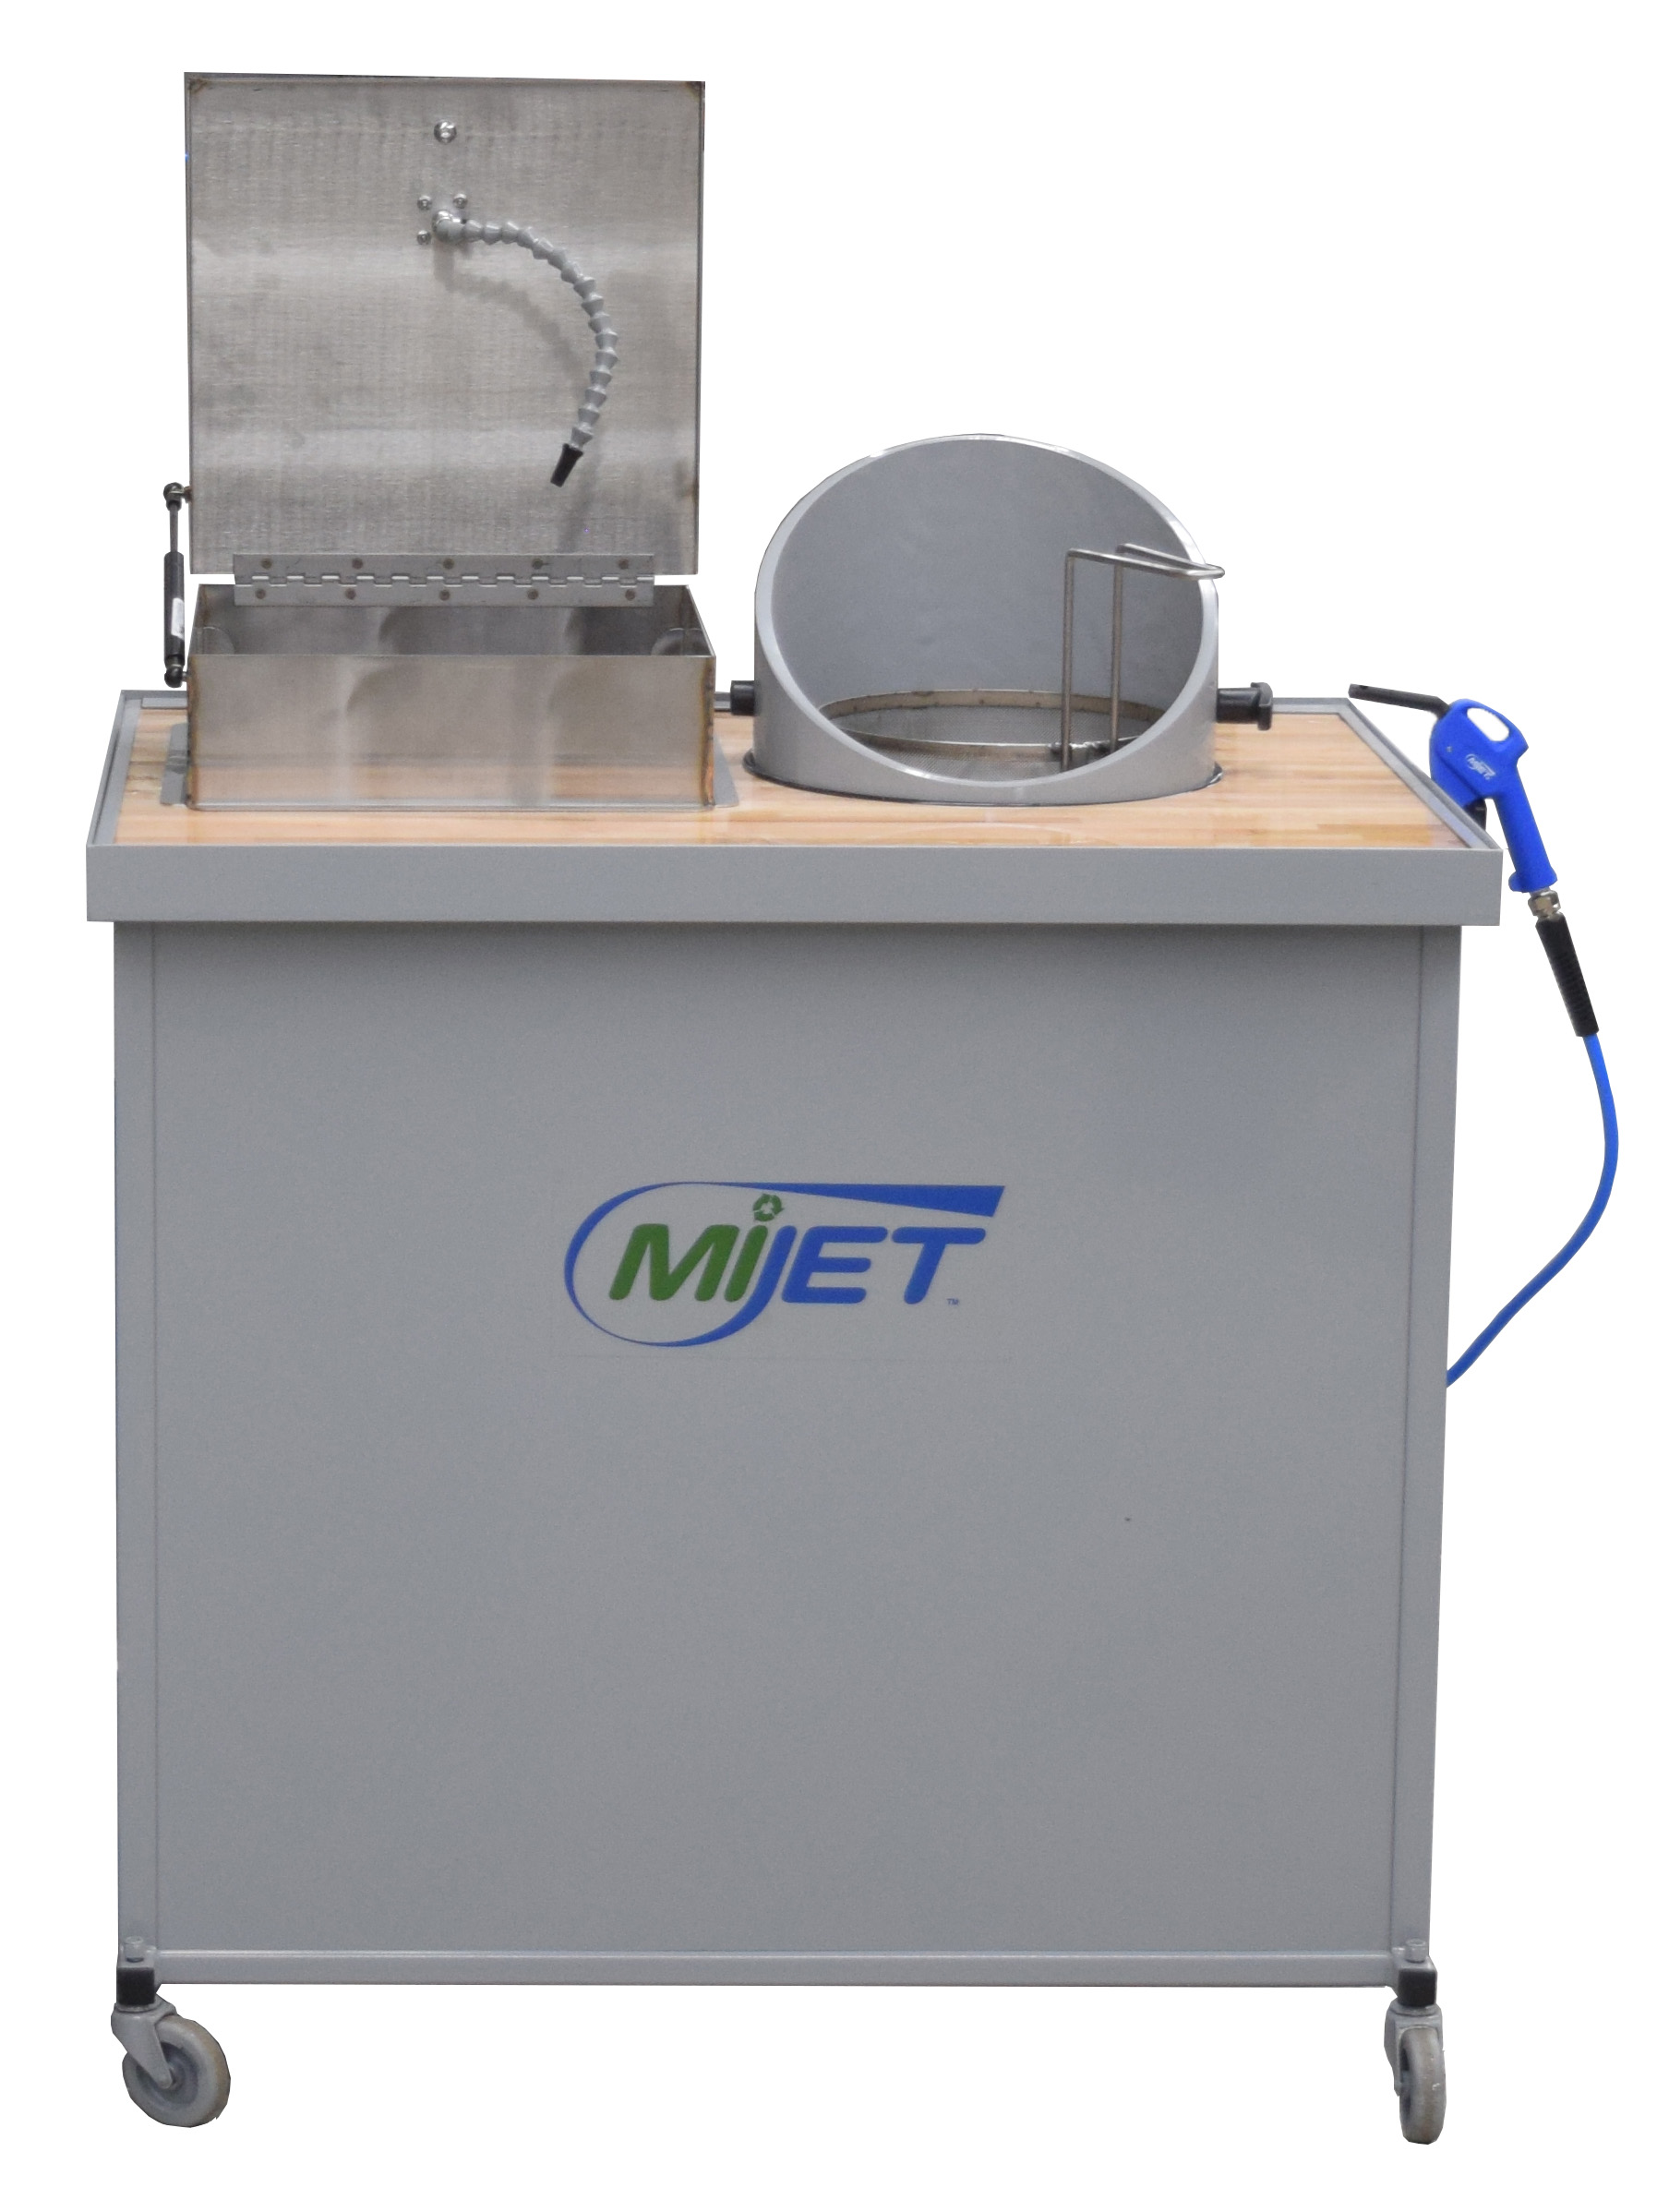 MiJET 12 inch Wash Stations with stainless dip tank and parts basket